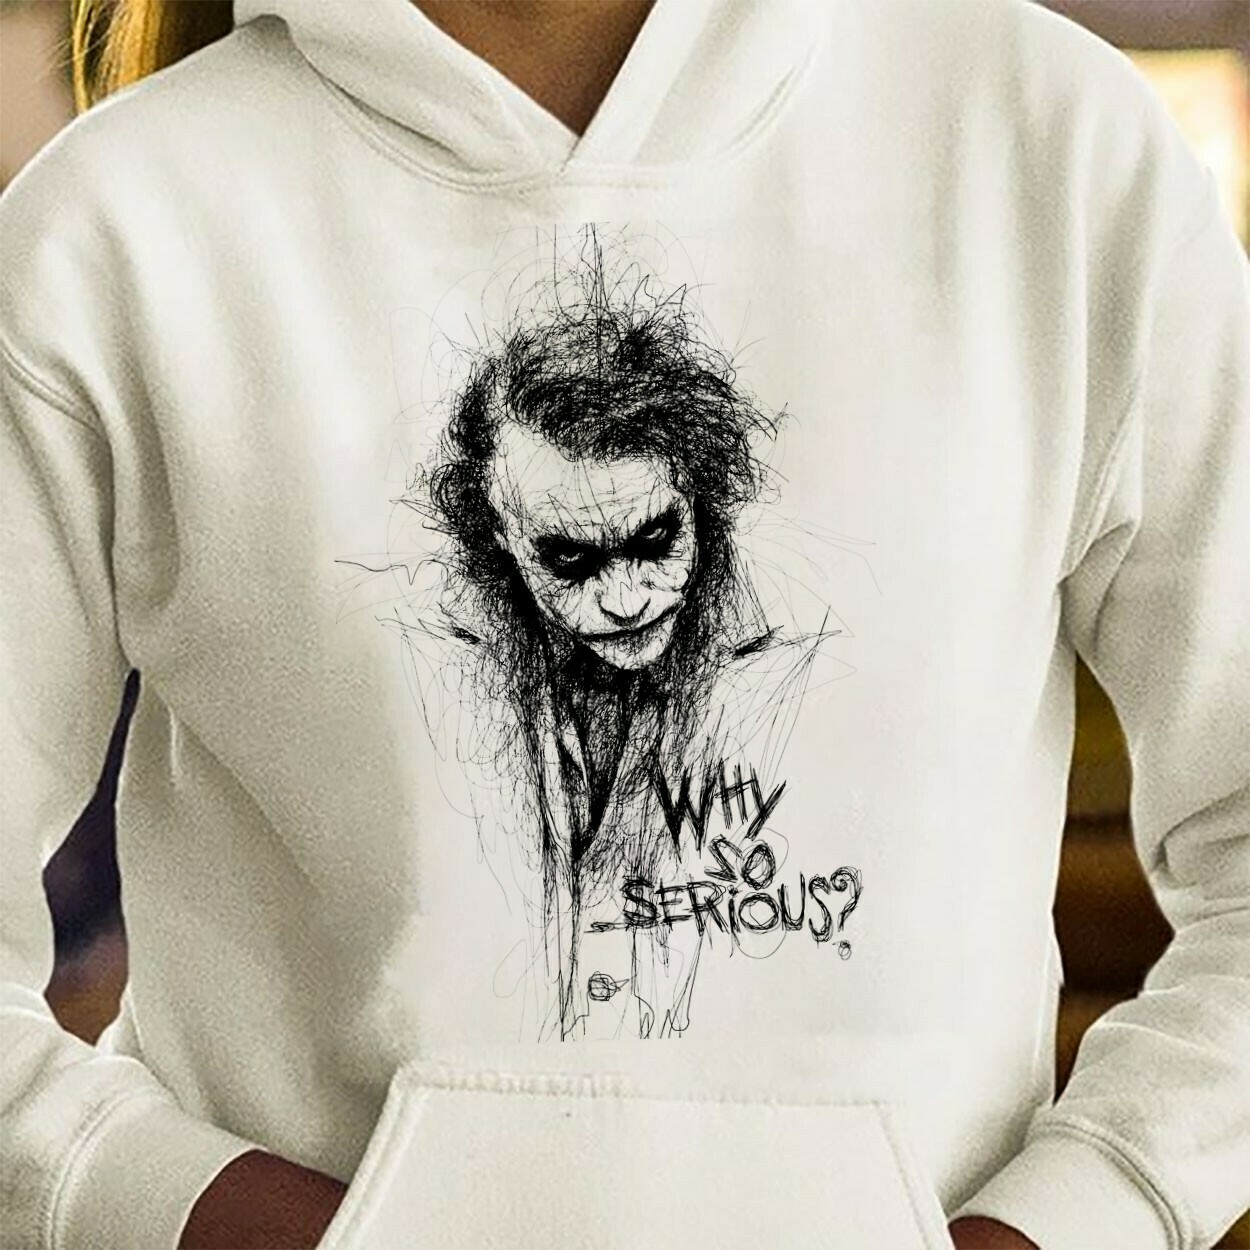 Joker Heath Ledger Sketch Gotham Why So Serious Gifts Idea For Fans Here Comes Your Favorite Super Villain Halloween Horror Unisex T-Shirt Long Sleeve Sweatshirt Hoodie Jolly Family Gifts